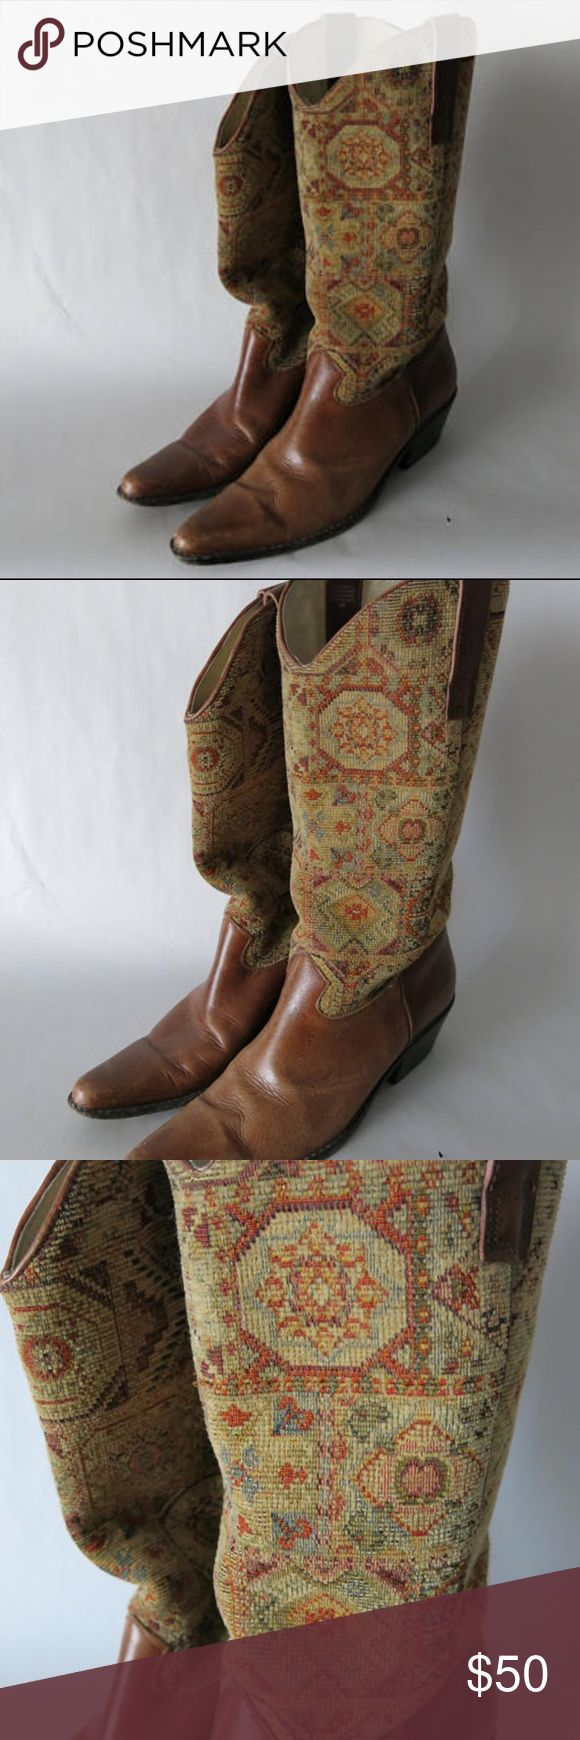 Matisse Tall Kilim Leather Boots Matisse Boots - Boho patterned upper, leather lower boots. Pointed toe, mid/low heel. Slightly worn but in fantastic shape! Can't post pics on foot because they're too small for me.  Size 8 women's (narrow) Matisse Shoes Heeled Boots